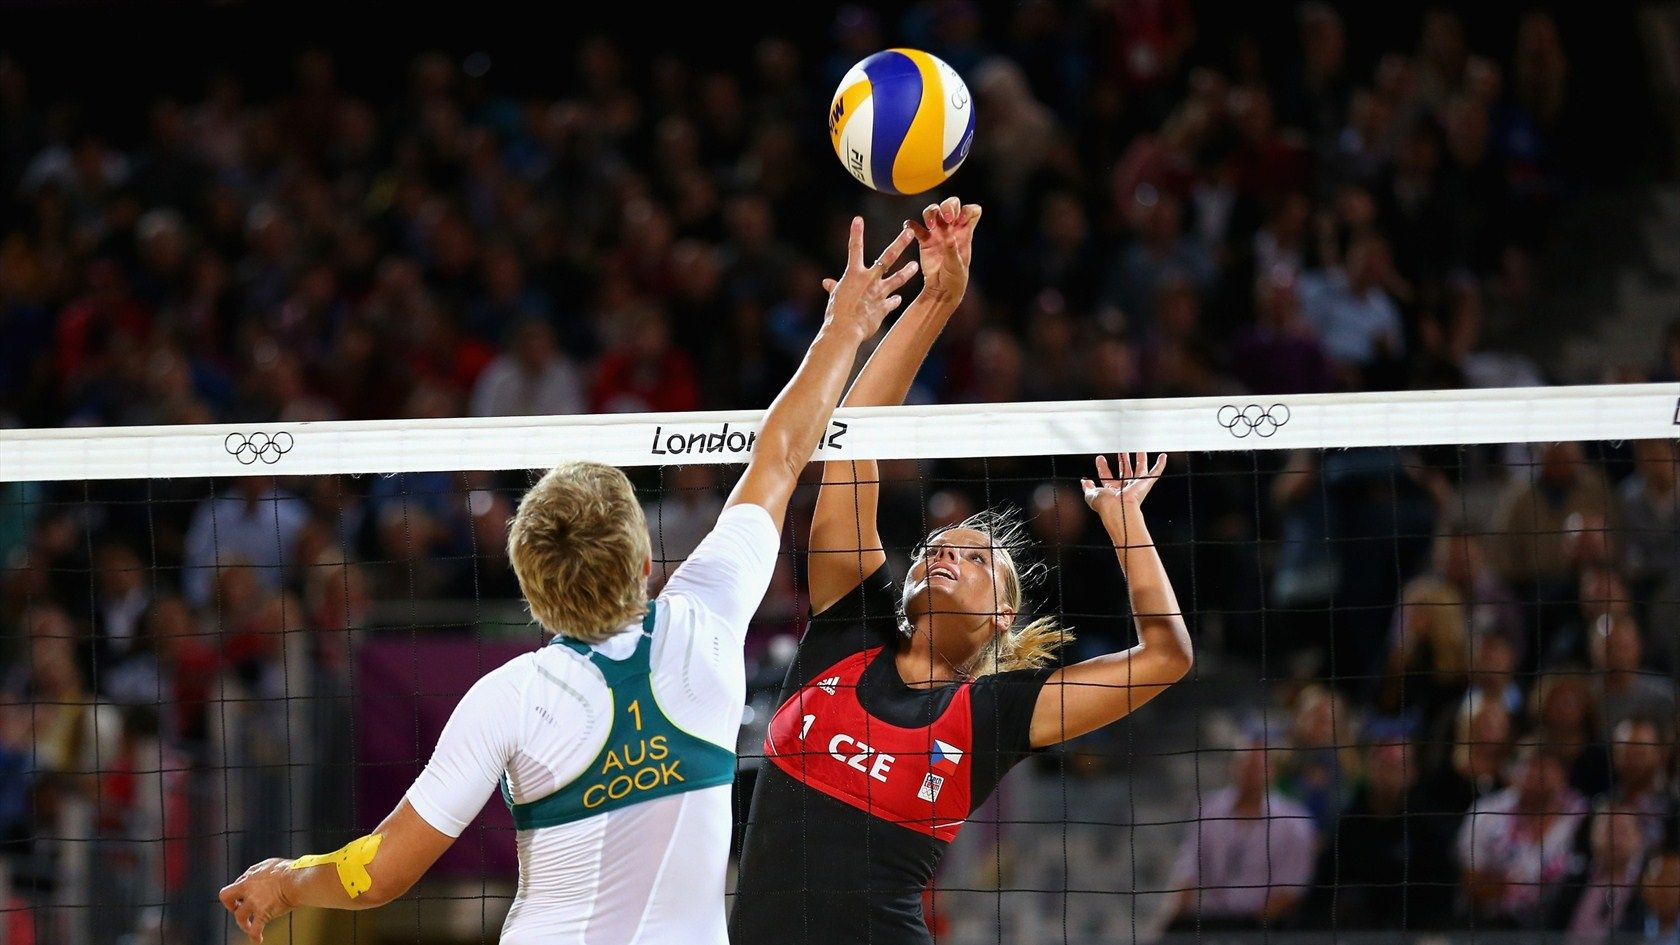 Five Time Olympian And Sydney Gold Medalist Nat Cook Of Australia Goes For The Kong Block Against Czech Republic M Volleyball Photos Beach Volleyball Olympics